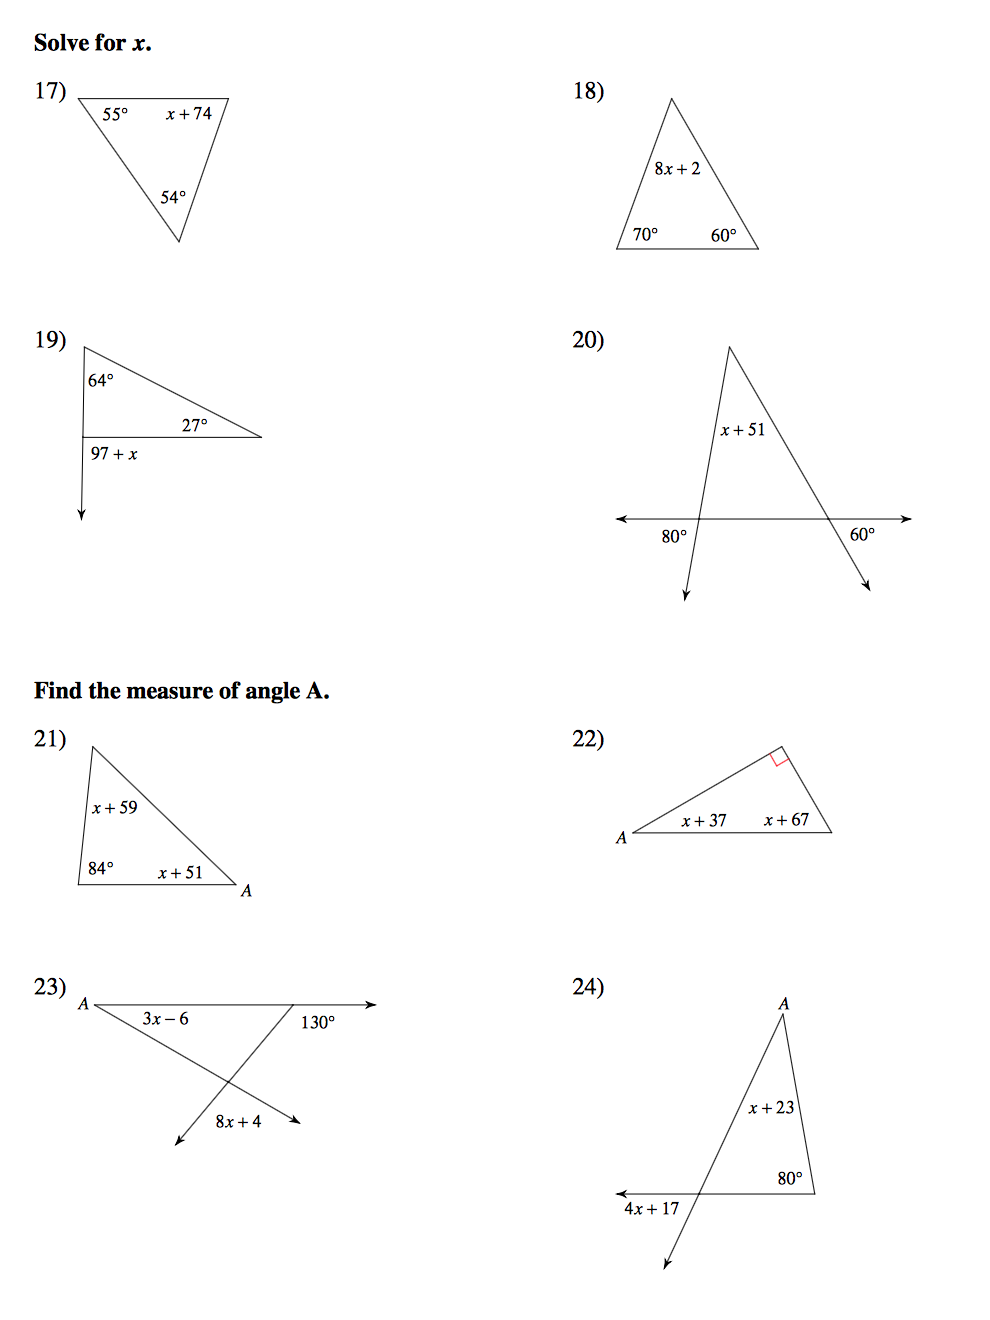 Geometry mrs murk 39 s math class - Sum of the exterior angles of a triangle ...